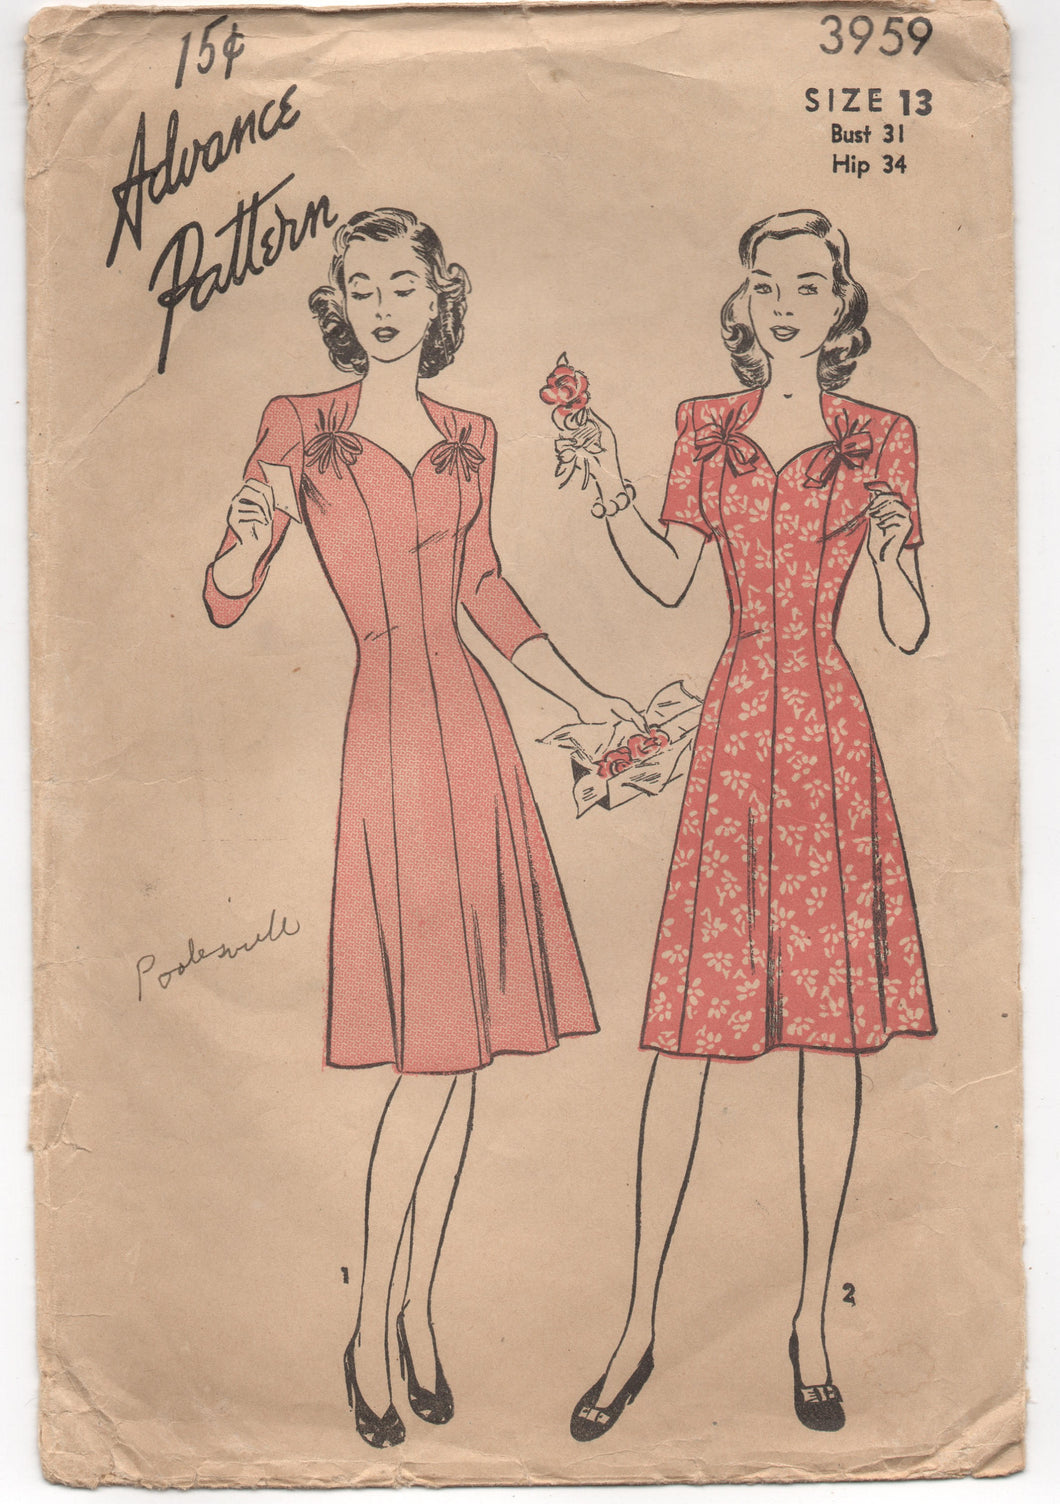 1940's Advance Princess cut One Piece Dress with Ties at Neckline Pattern - Bust 31